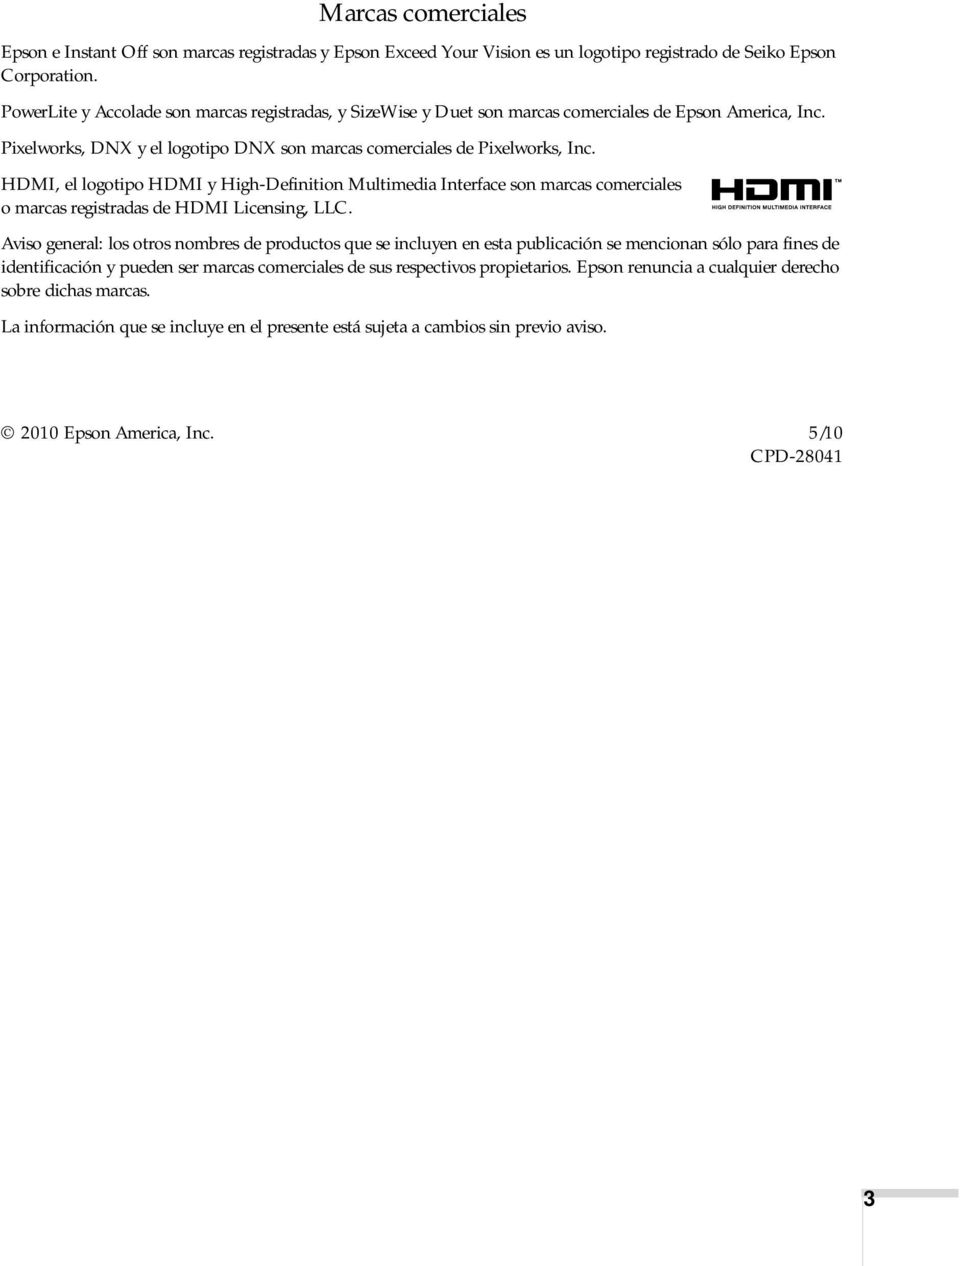 HDMI, el logotipo HDMI y High-Definition Multimedia Interface son marcas comerciales o marcas registradas de HDMI Licensing, LLC.